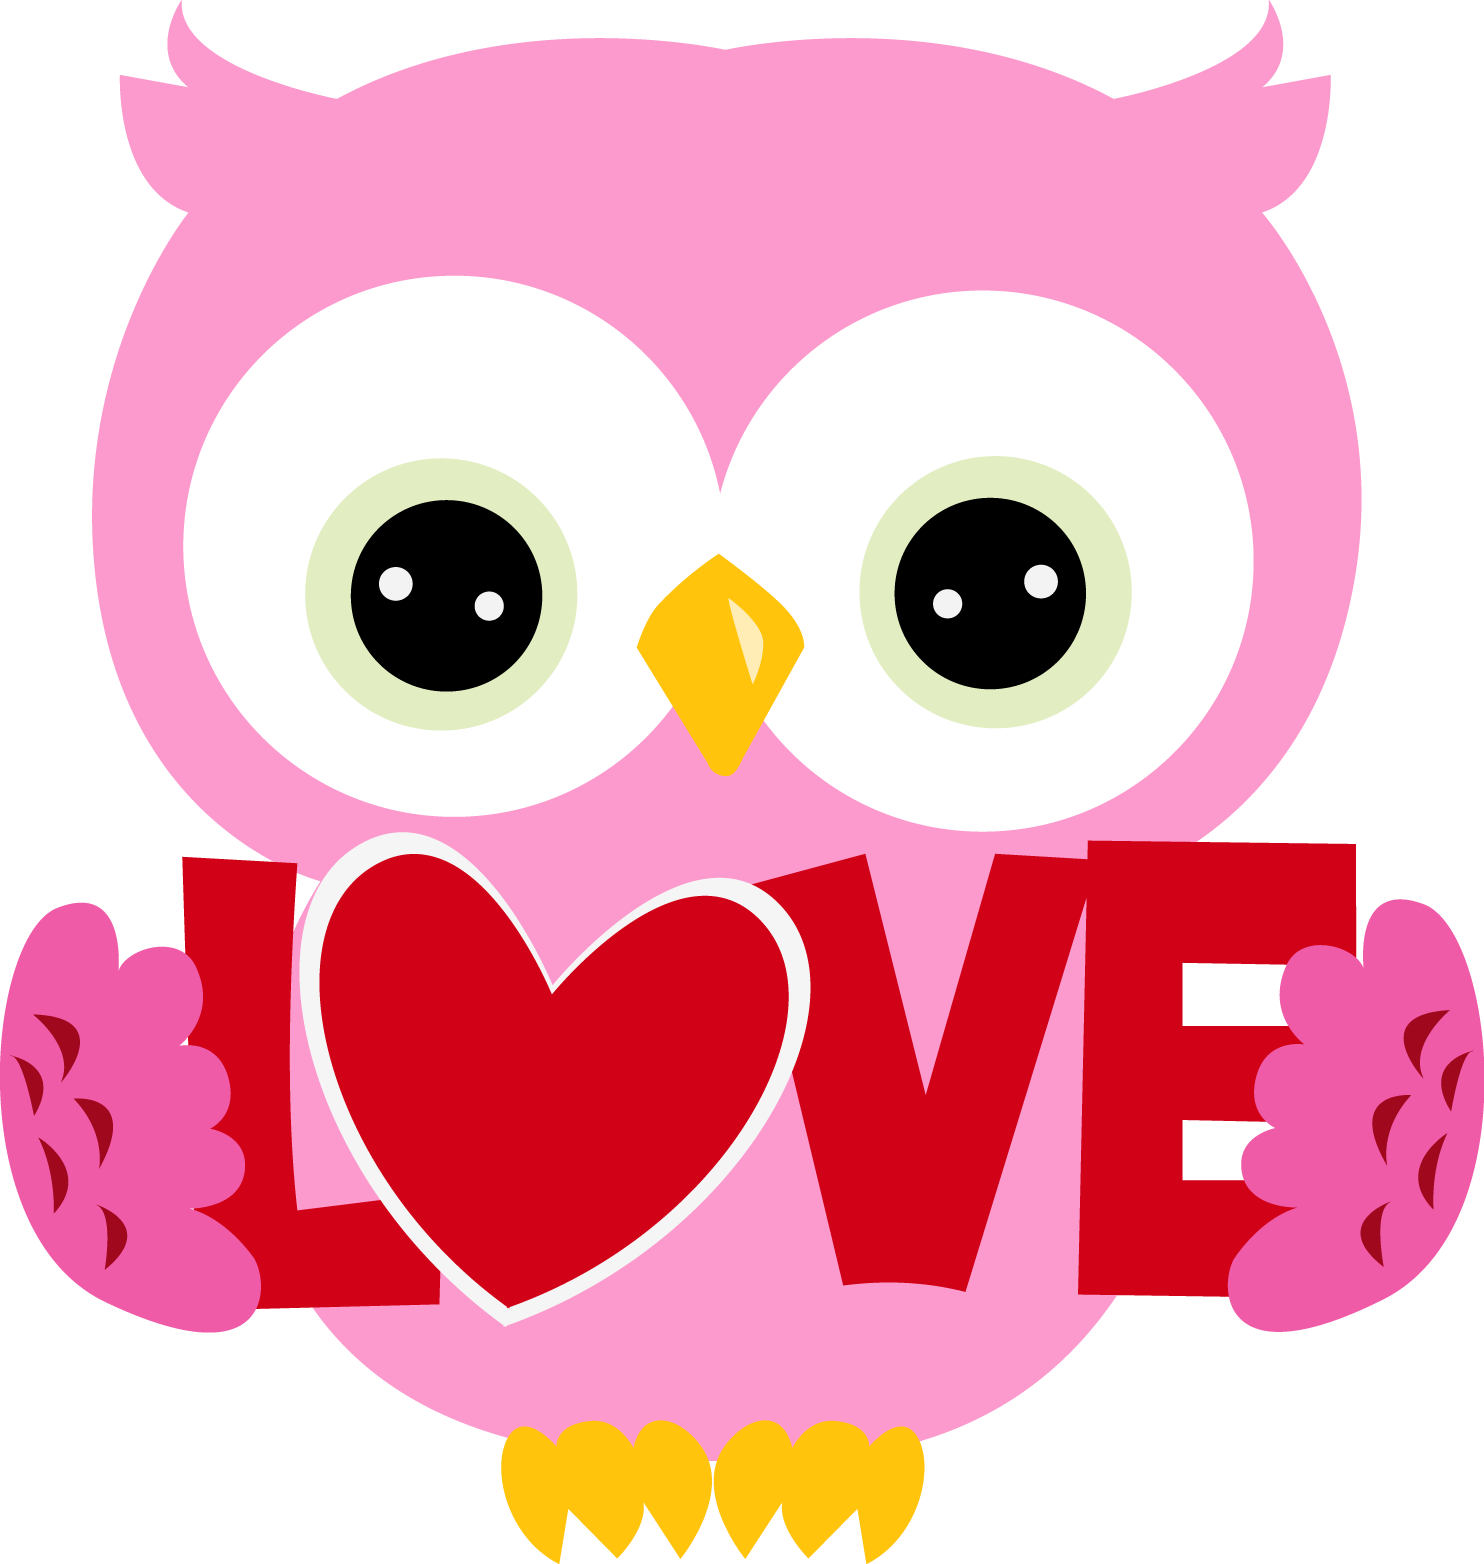 Owls clipart february. Valentine owl letters format